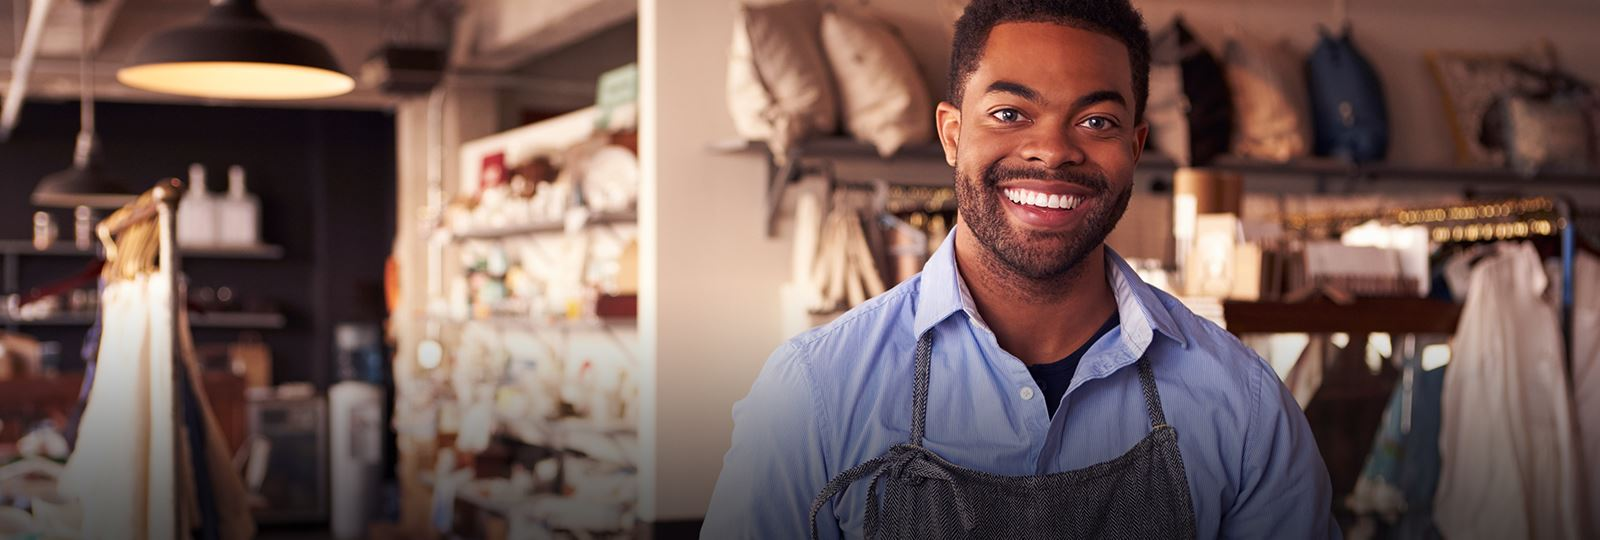 man in apron smiling in a store